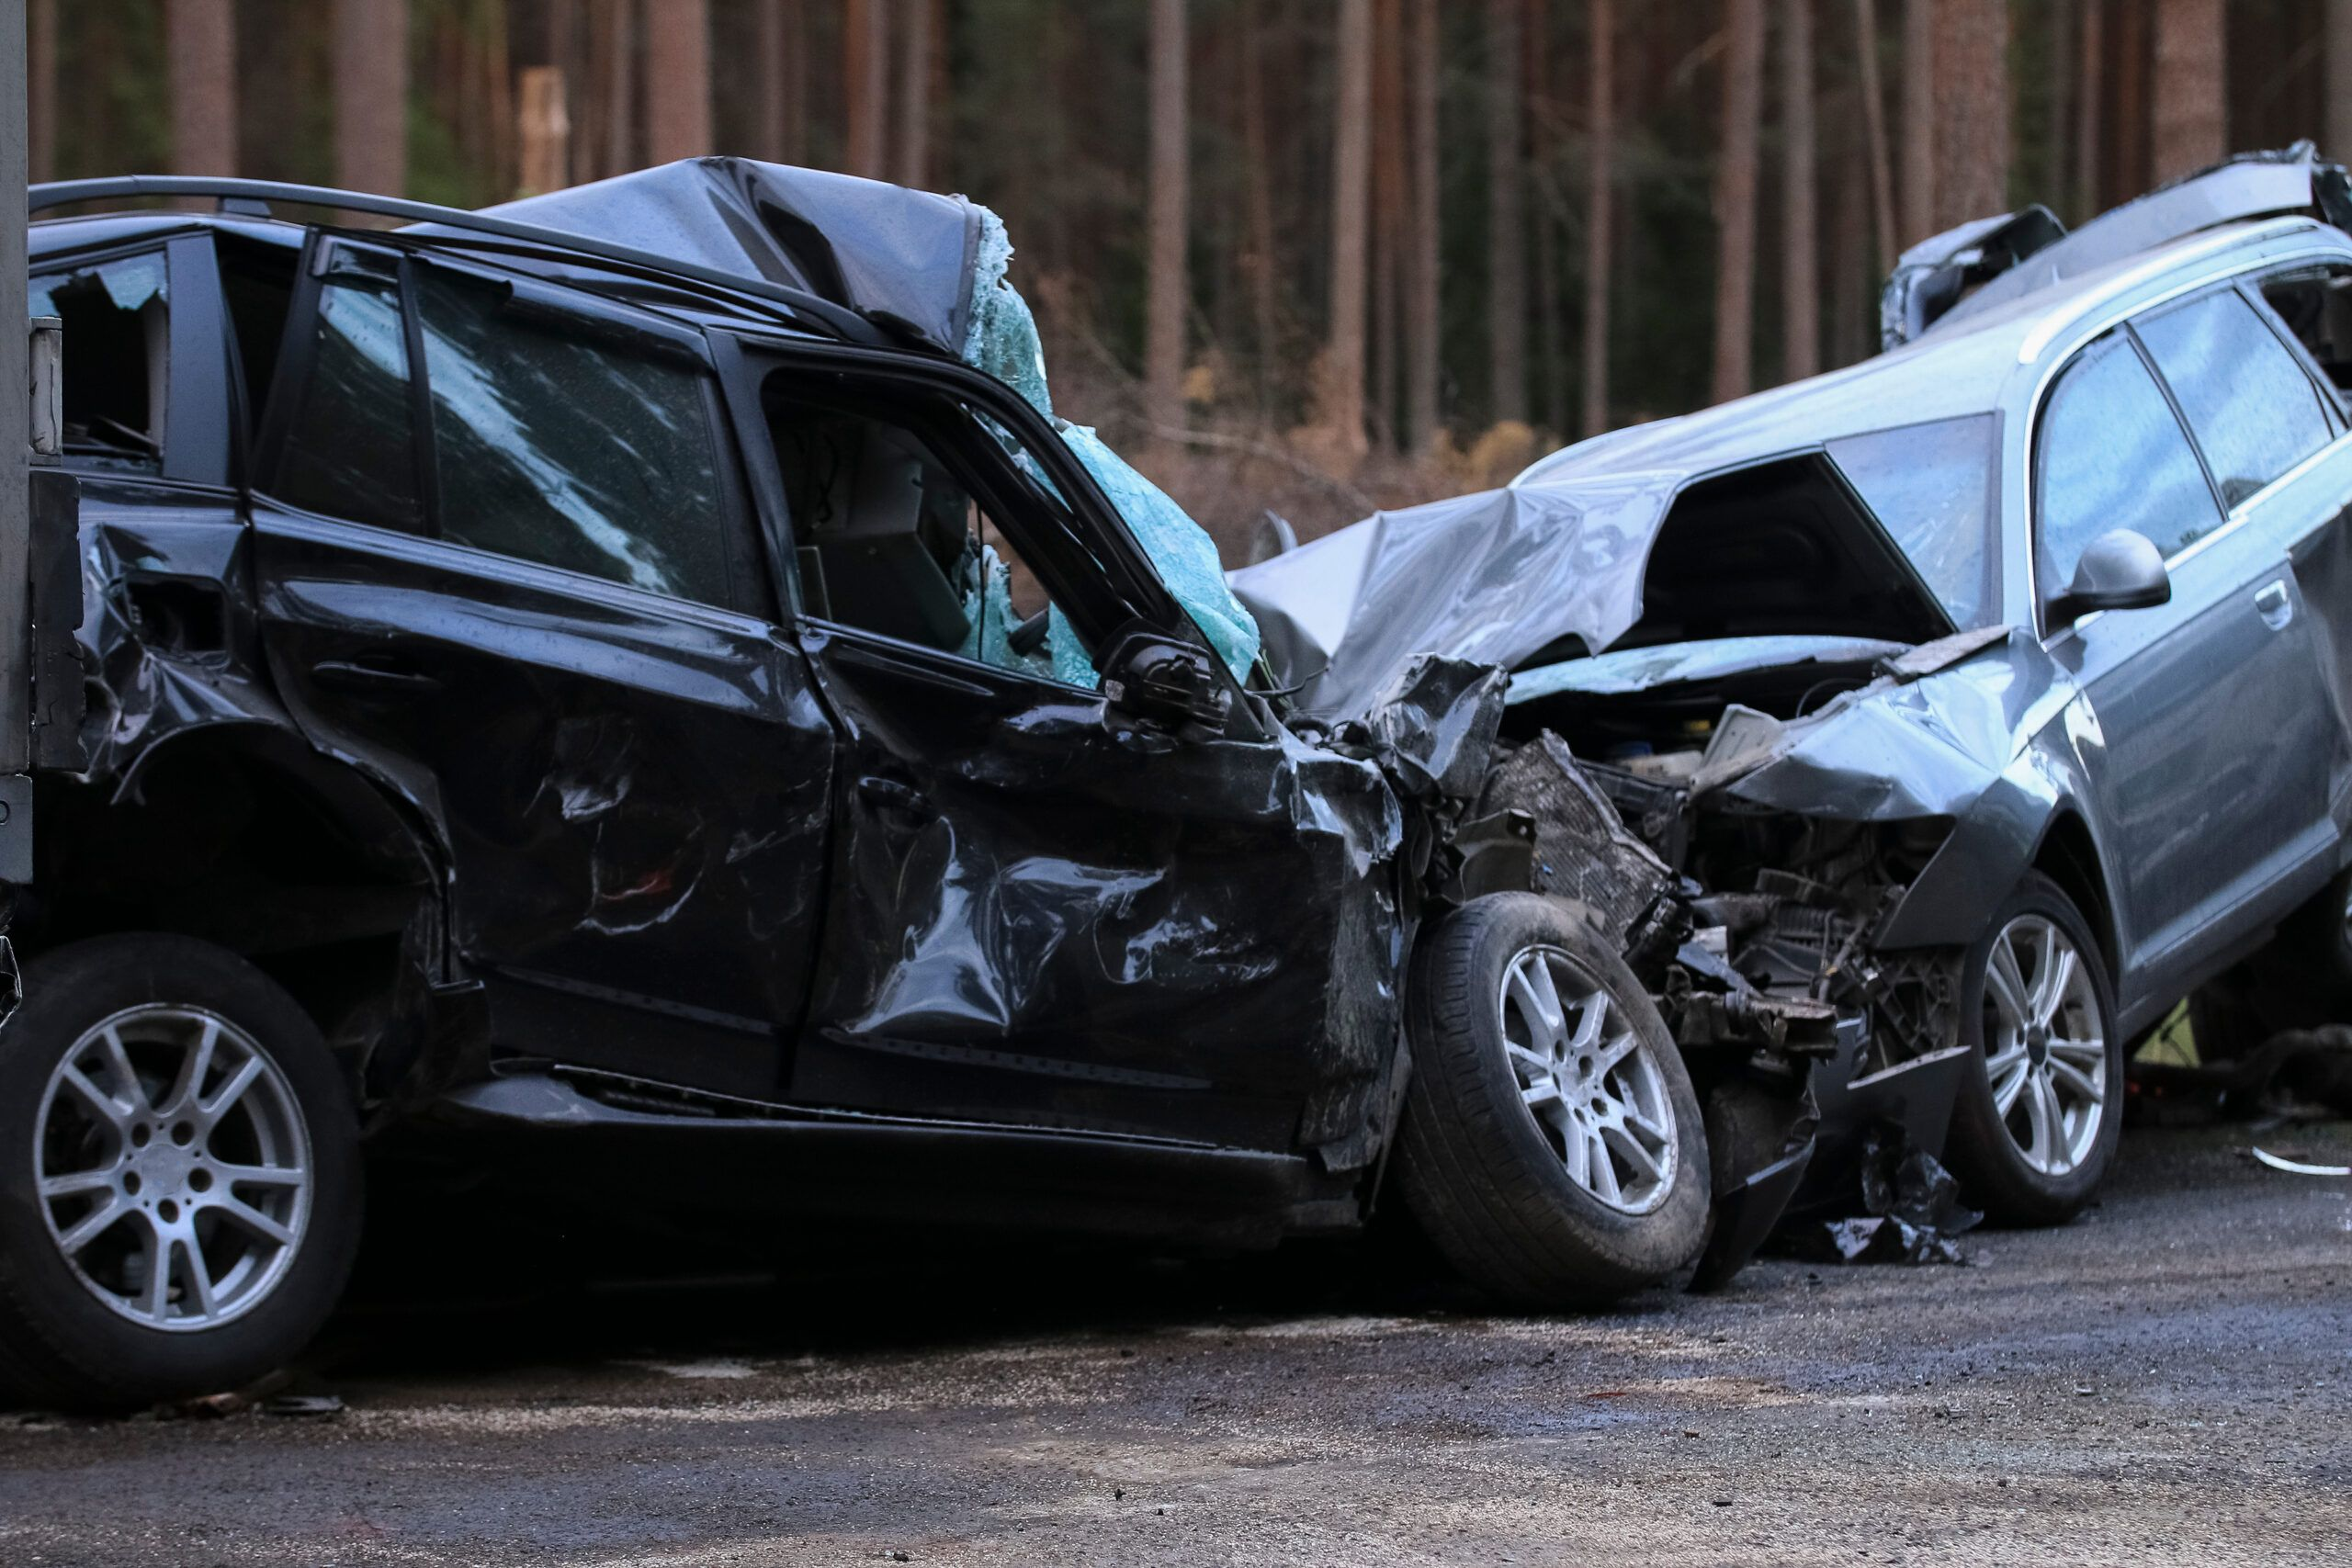 Common Car Accidents in Chesterfield